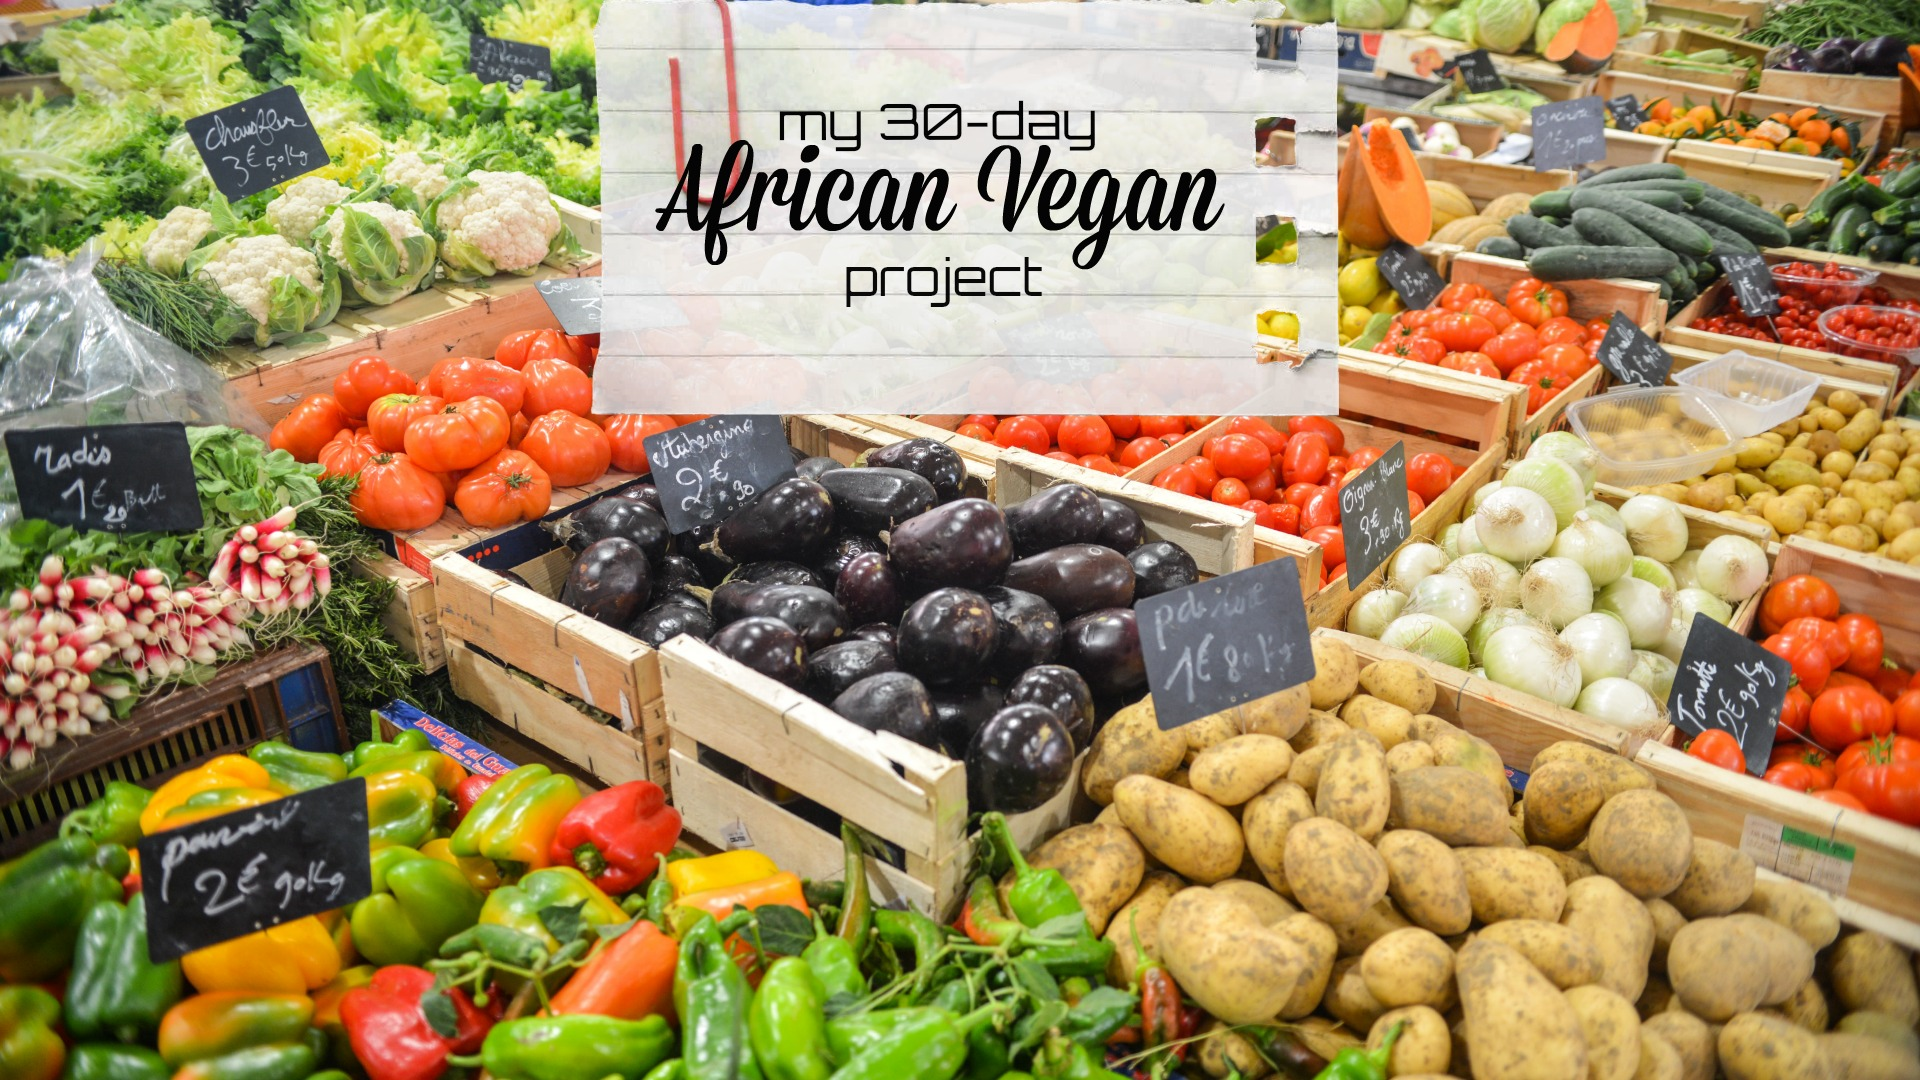 african-vegan-project